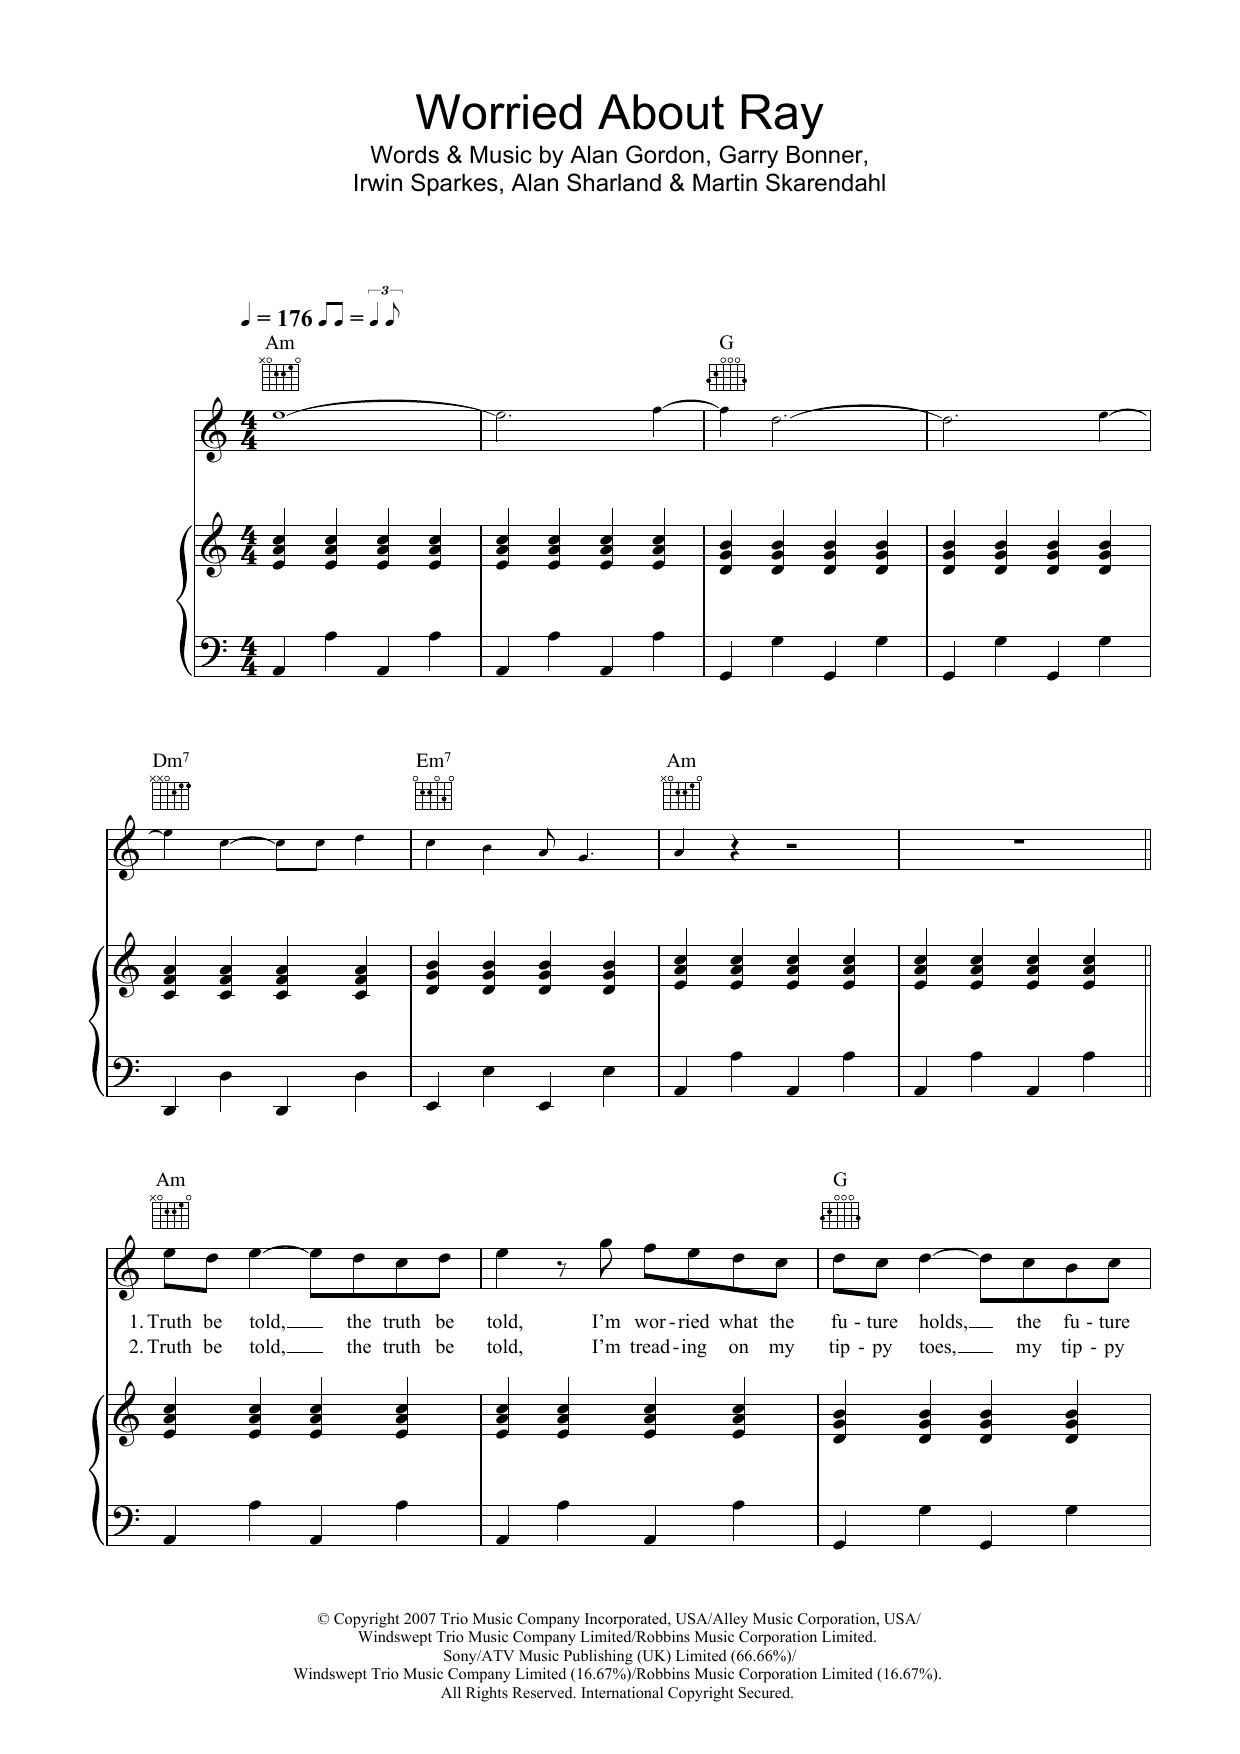 Worried About Ray Sheet Music